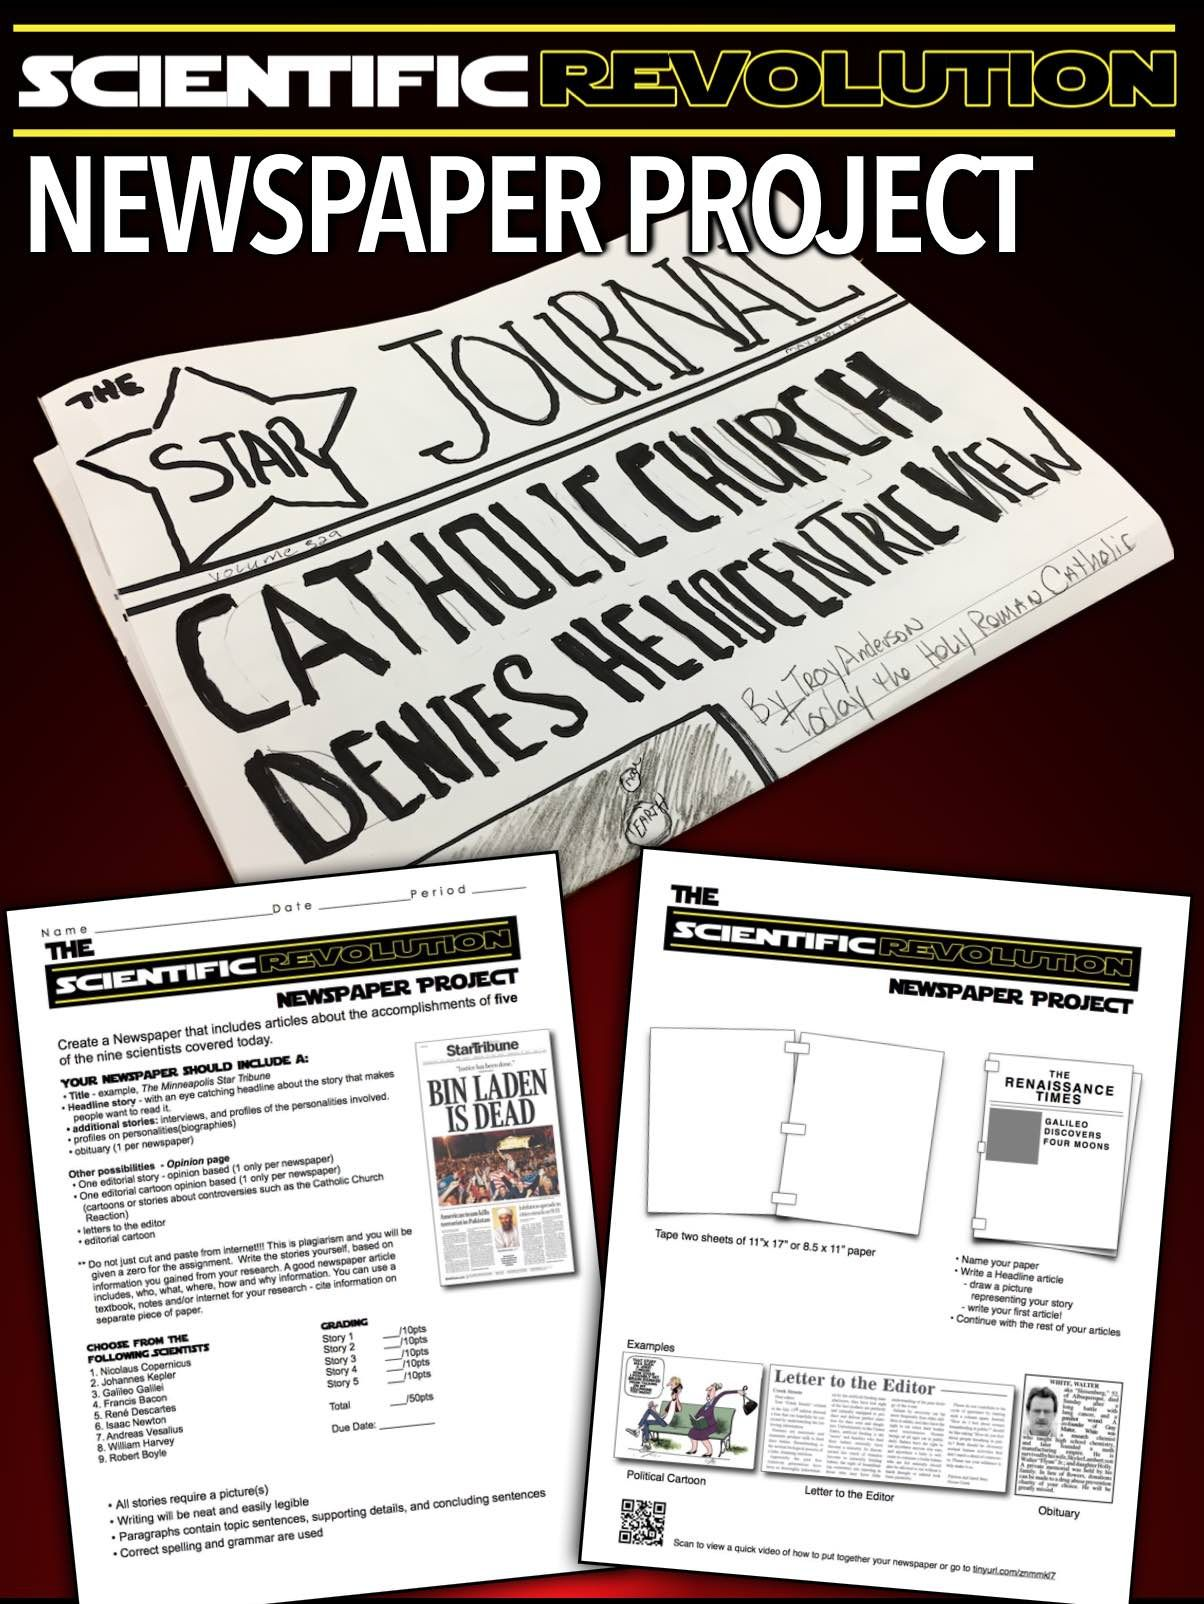 Scientific Revolution Newspaper Project